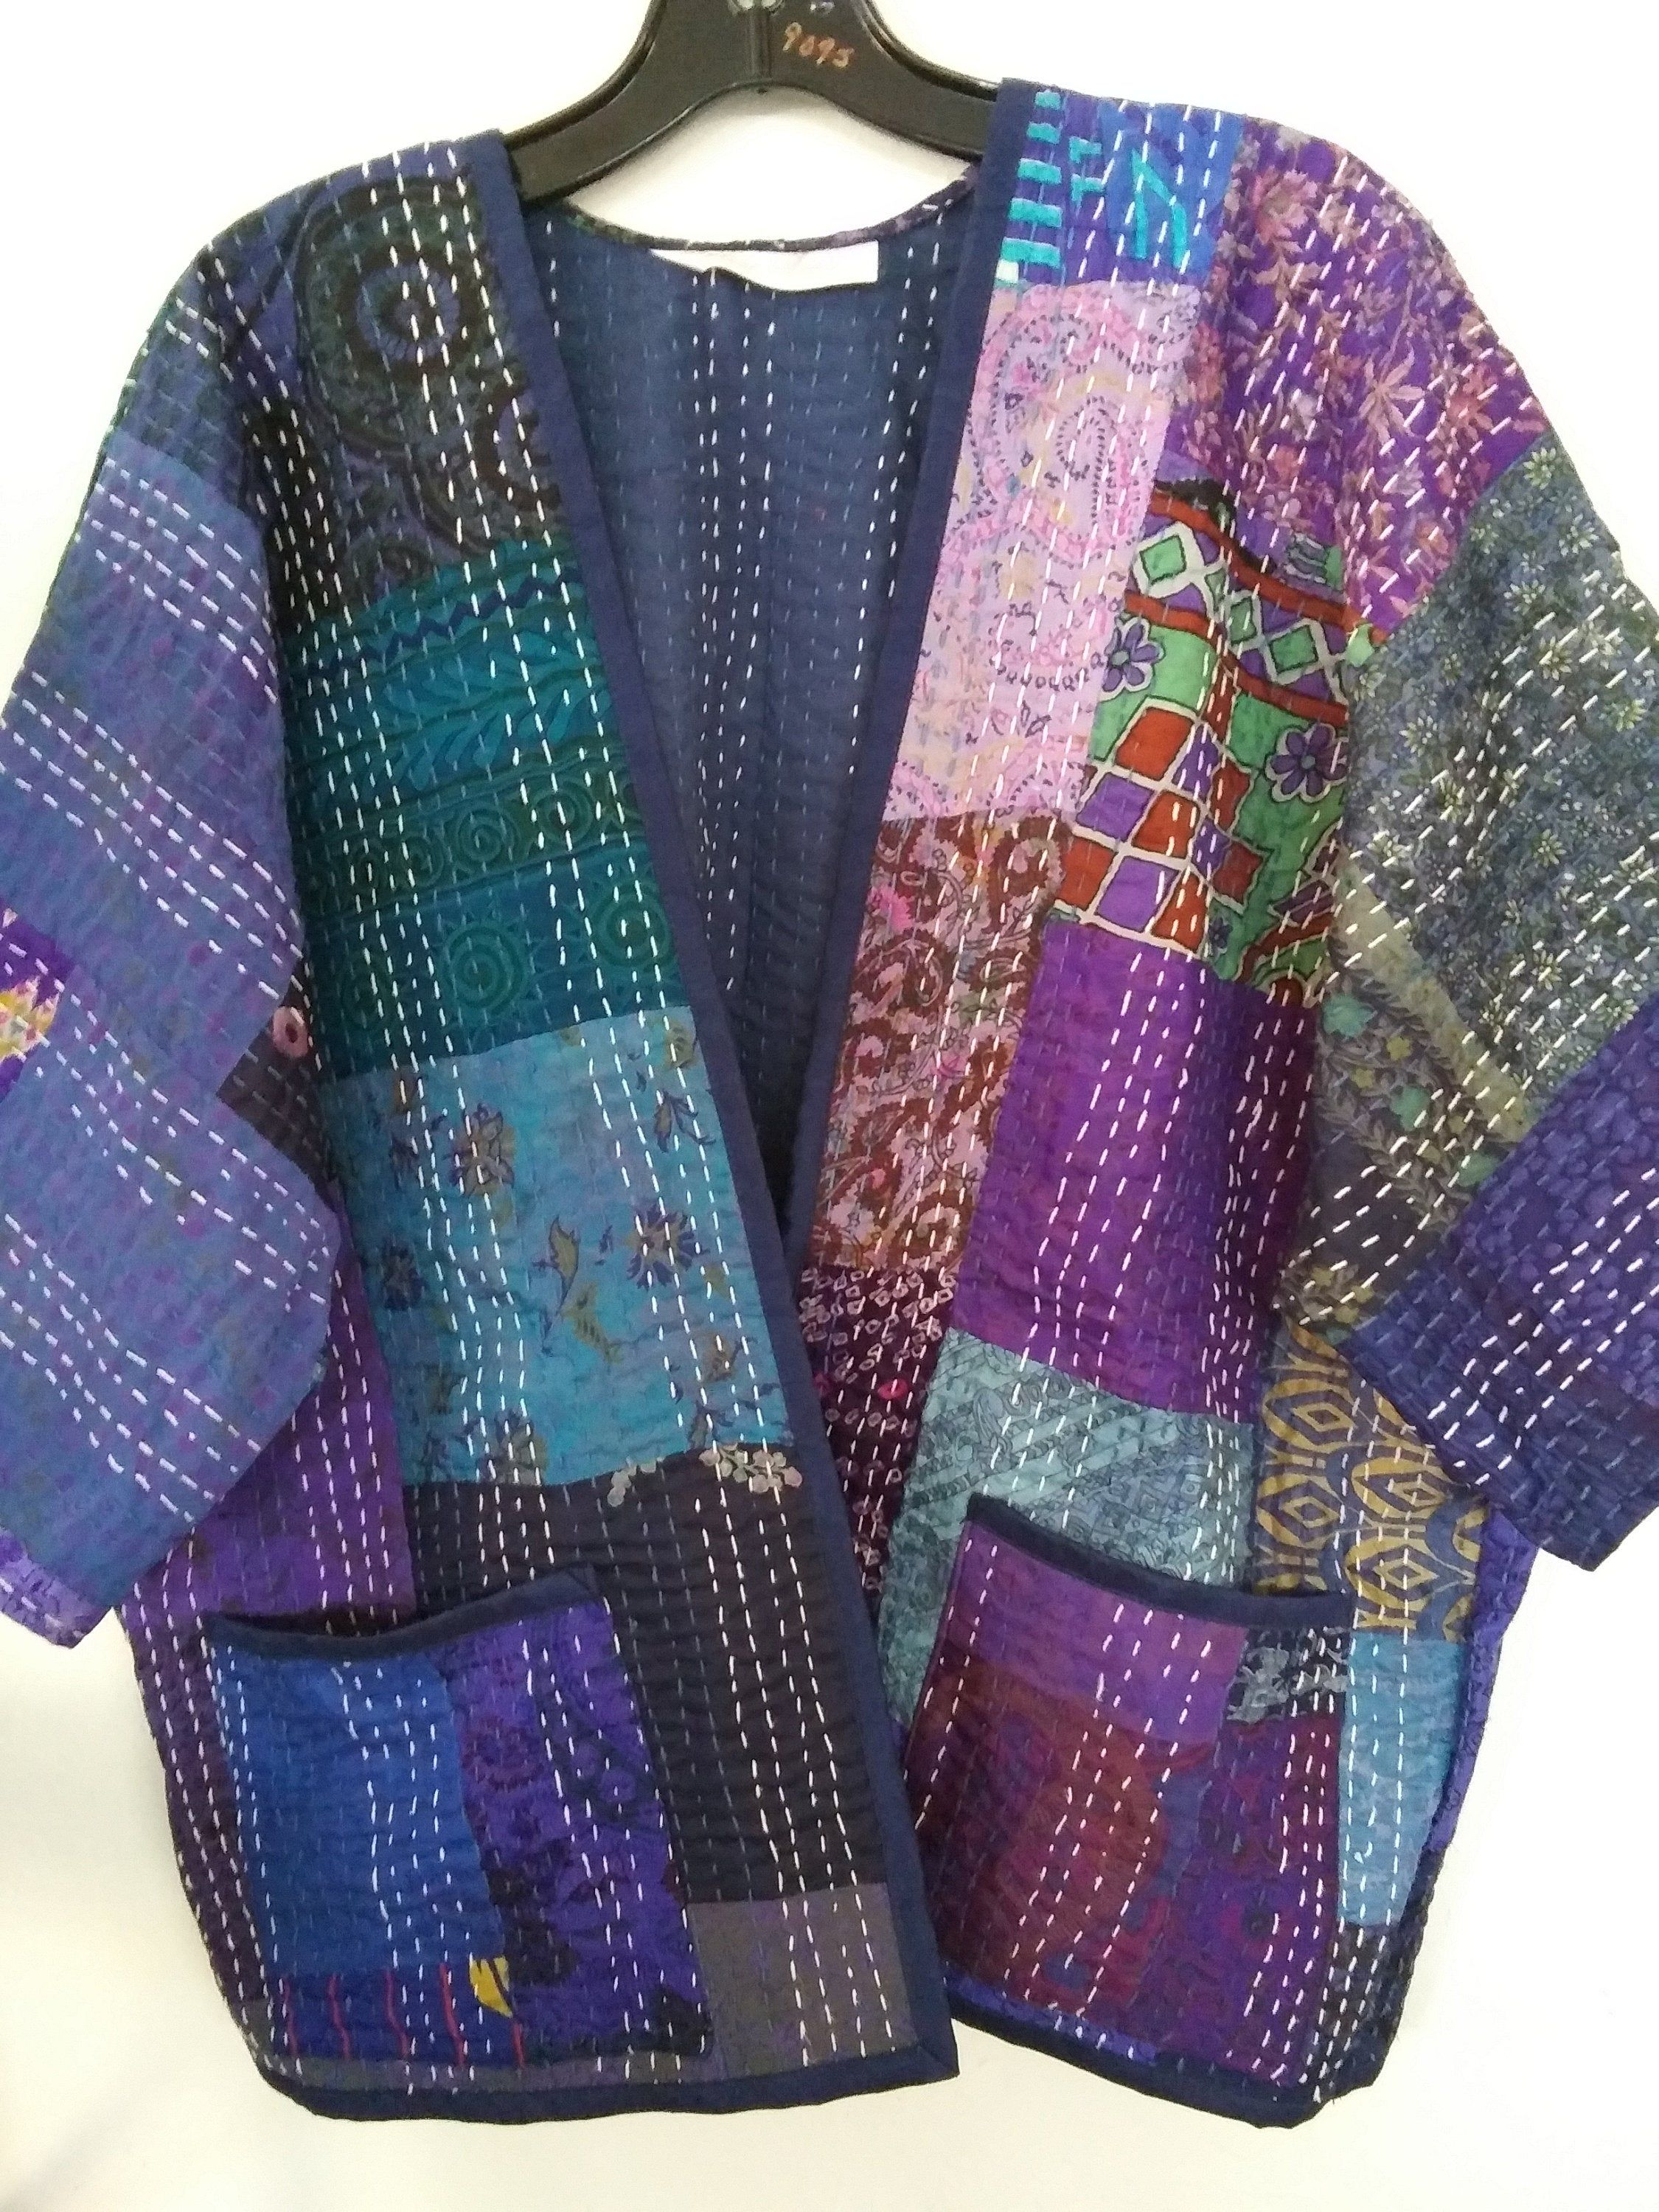 Silk Patchworked Lined Jacket Blues Purples Handmade From Vintage Quilted Kantha Fabric By Designsbysylvi In 2020 Quilted Clothes Quilted Jacket Pattern Kantha Fabric